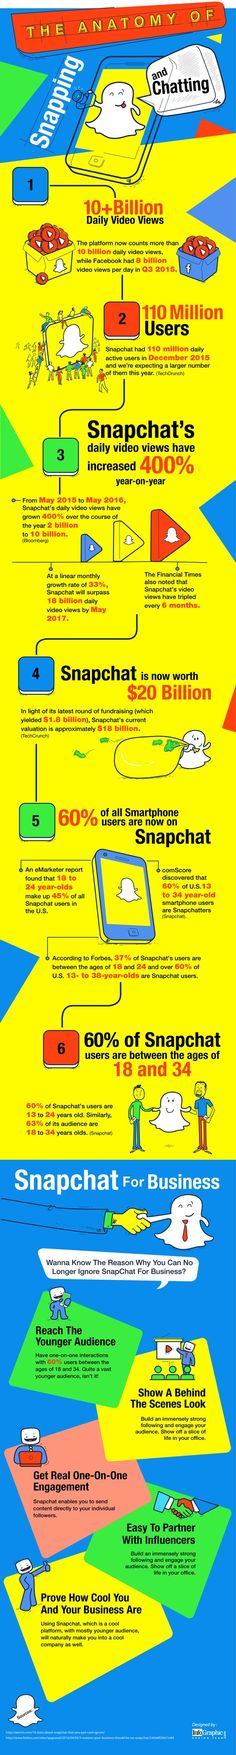 The Anatomy of Snapping and Chatting with SnapChat #Infographic #SnapChat…